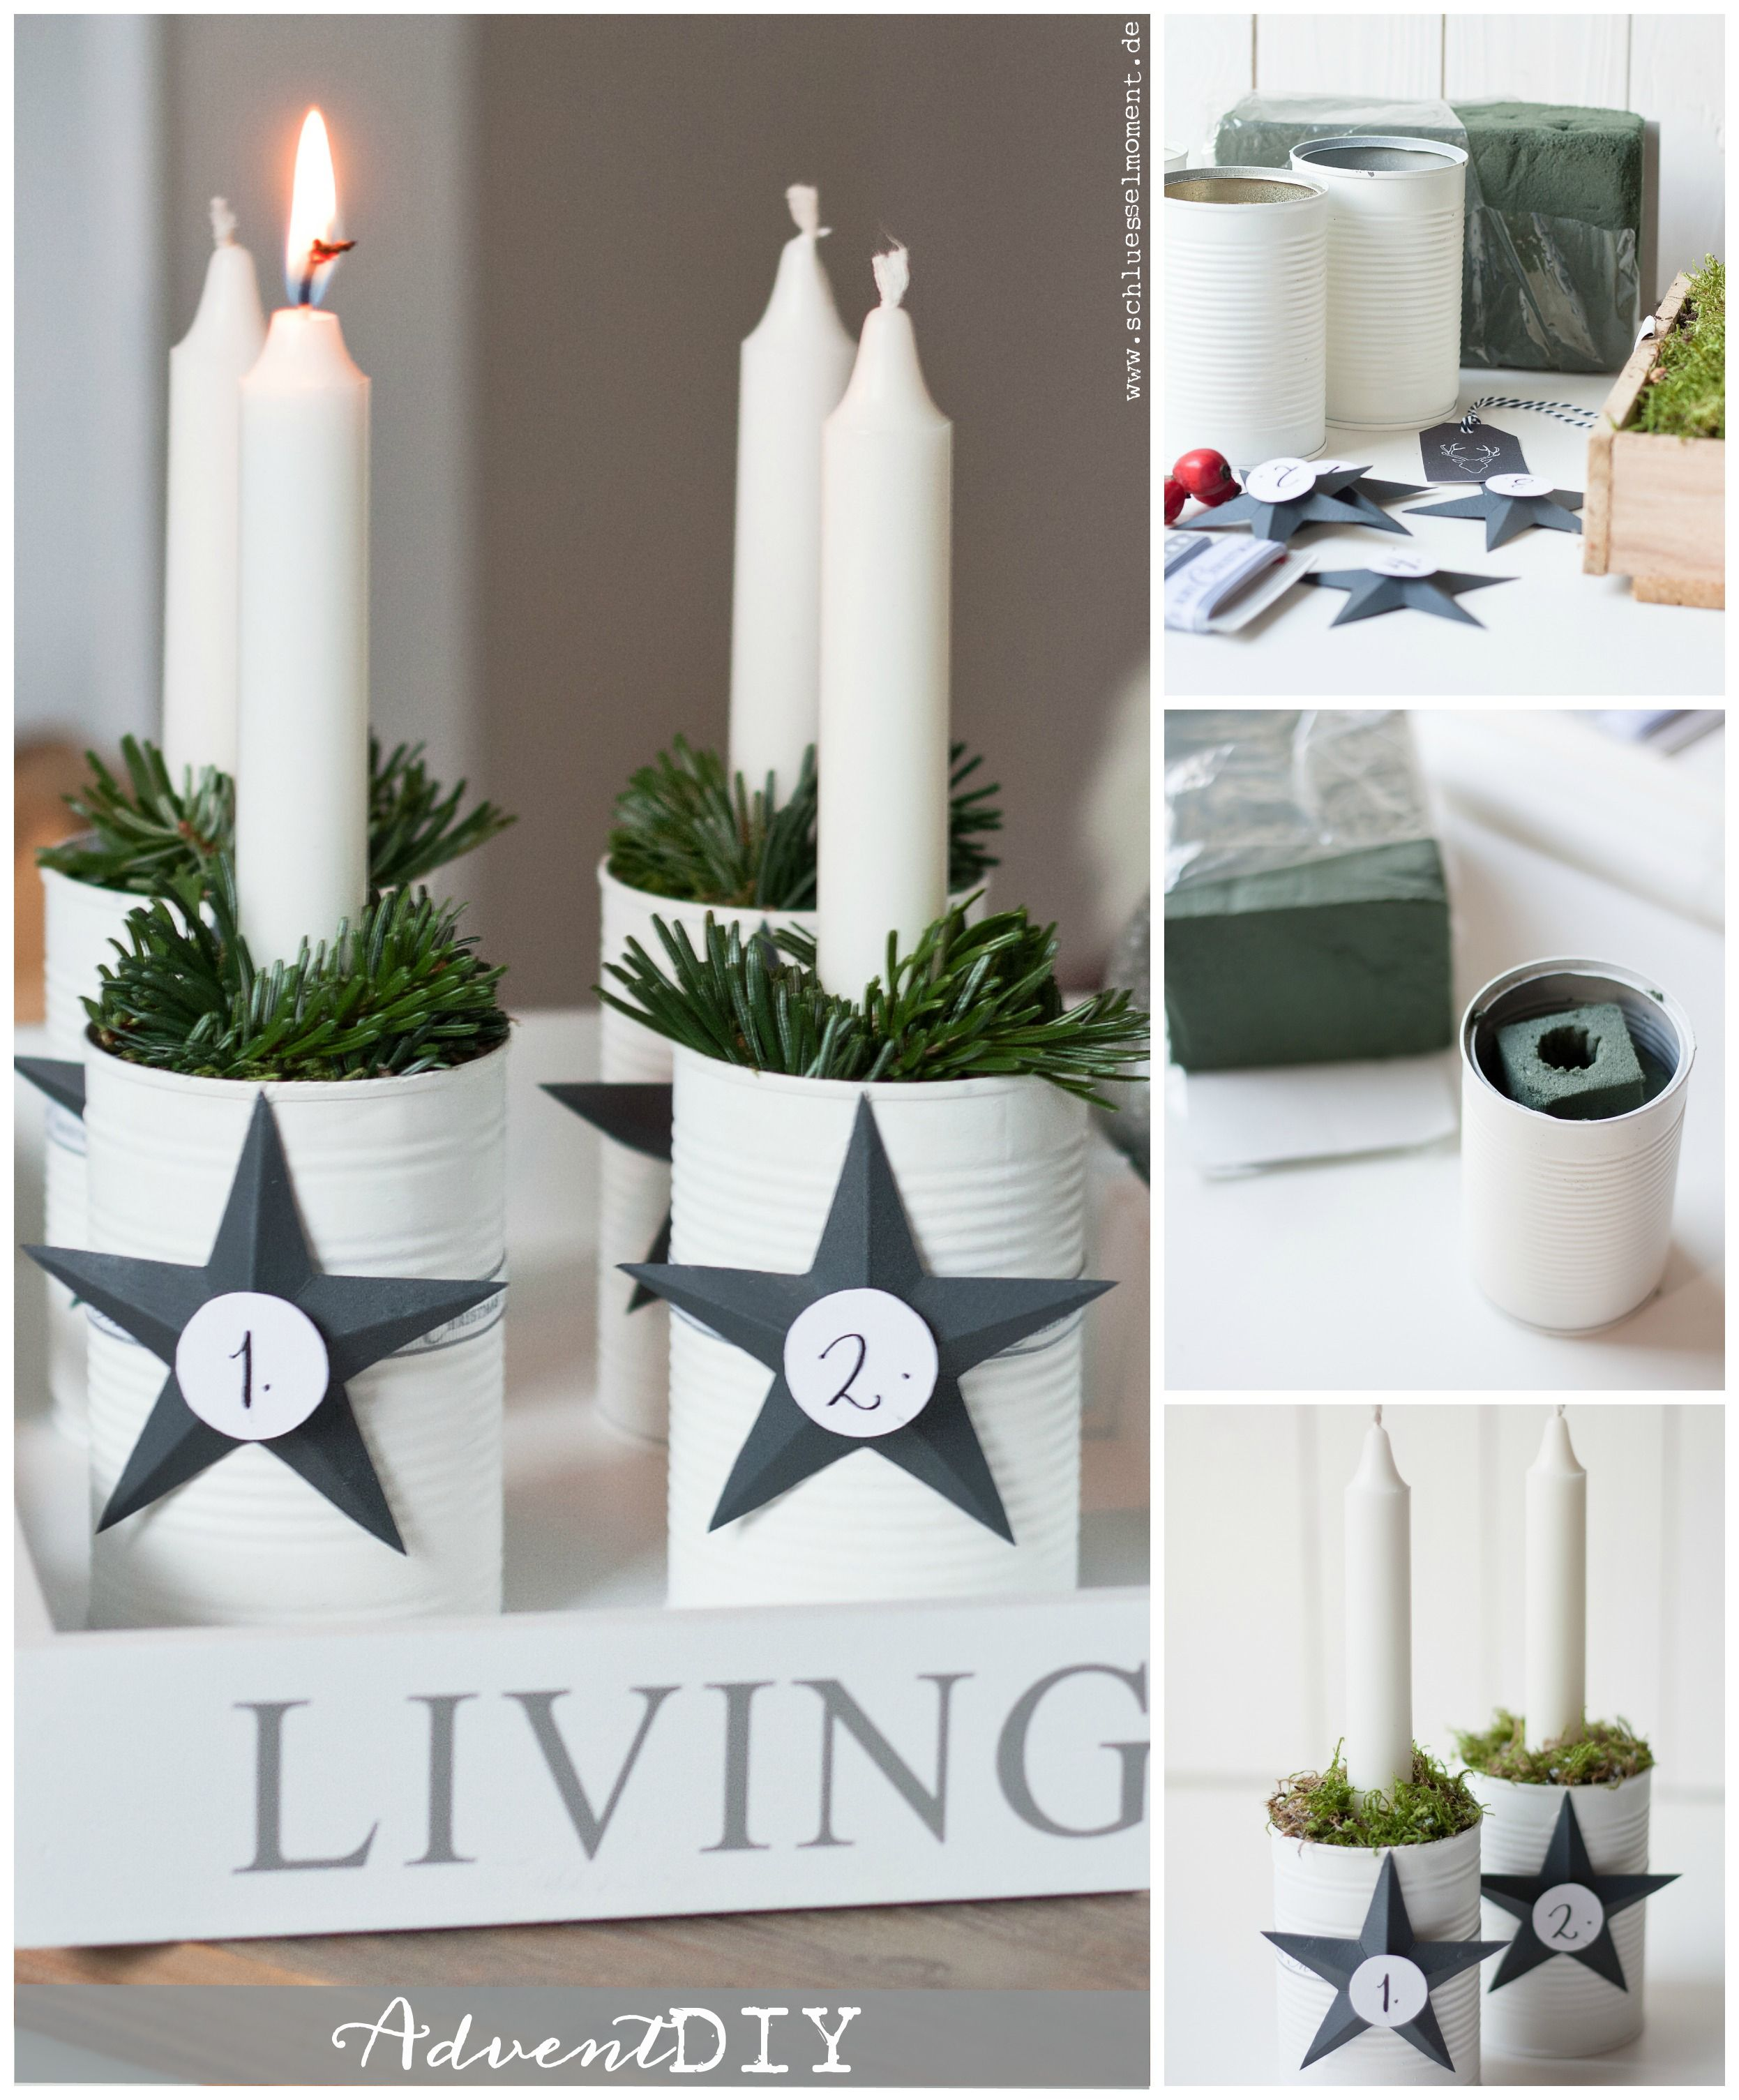 diy advent wreath moderner adventskranz aus dosen my. Black Bedroom Furniture Sets. Home Design Ideas